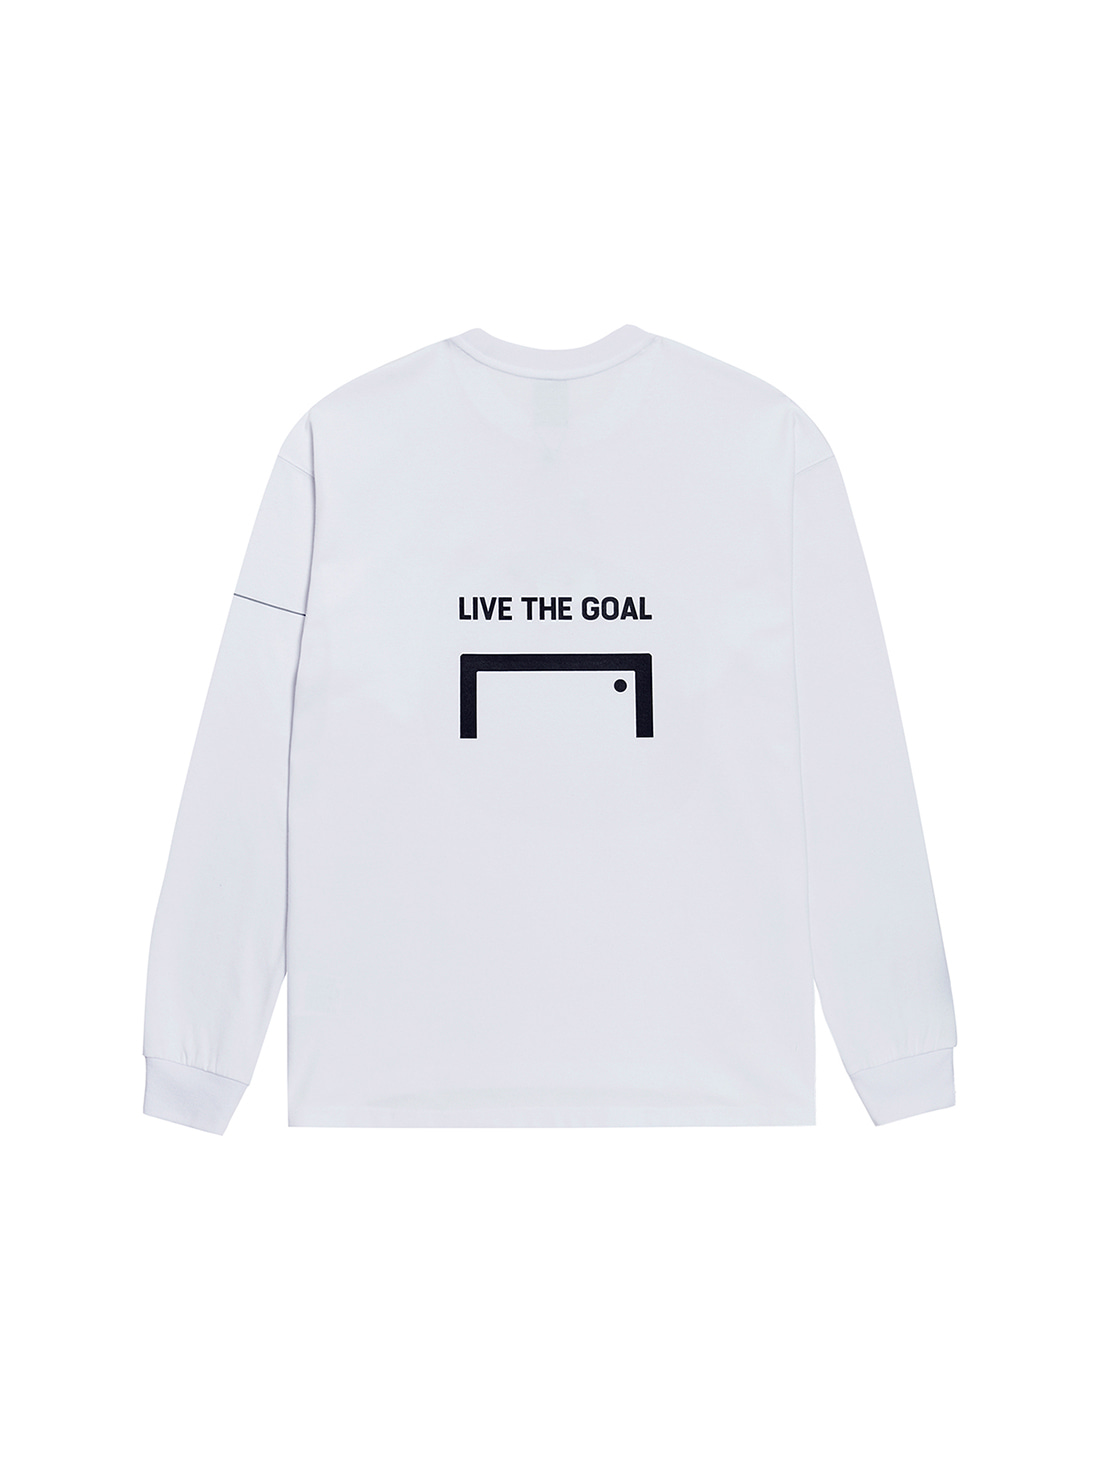 GOALSTUDIO LTG LONG SLEEVE TEE - WHITE